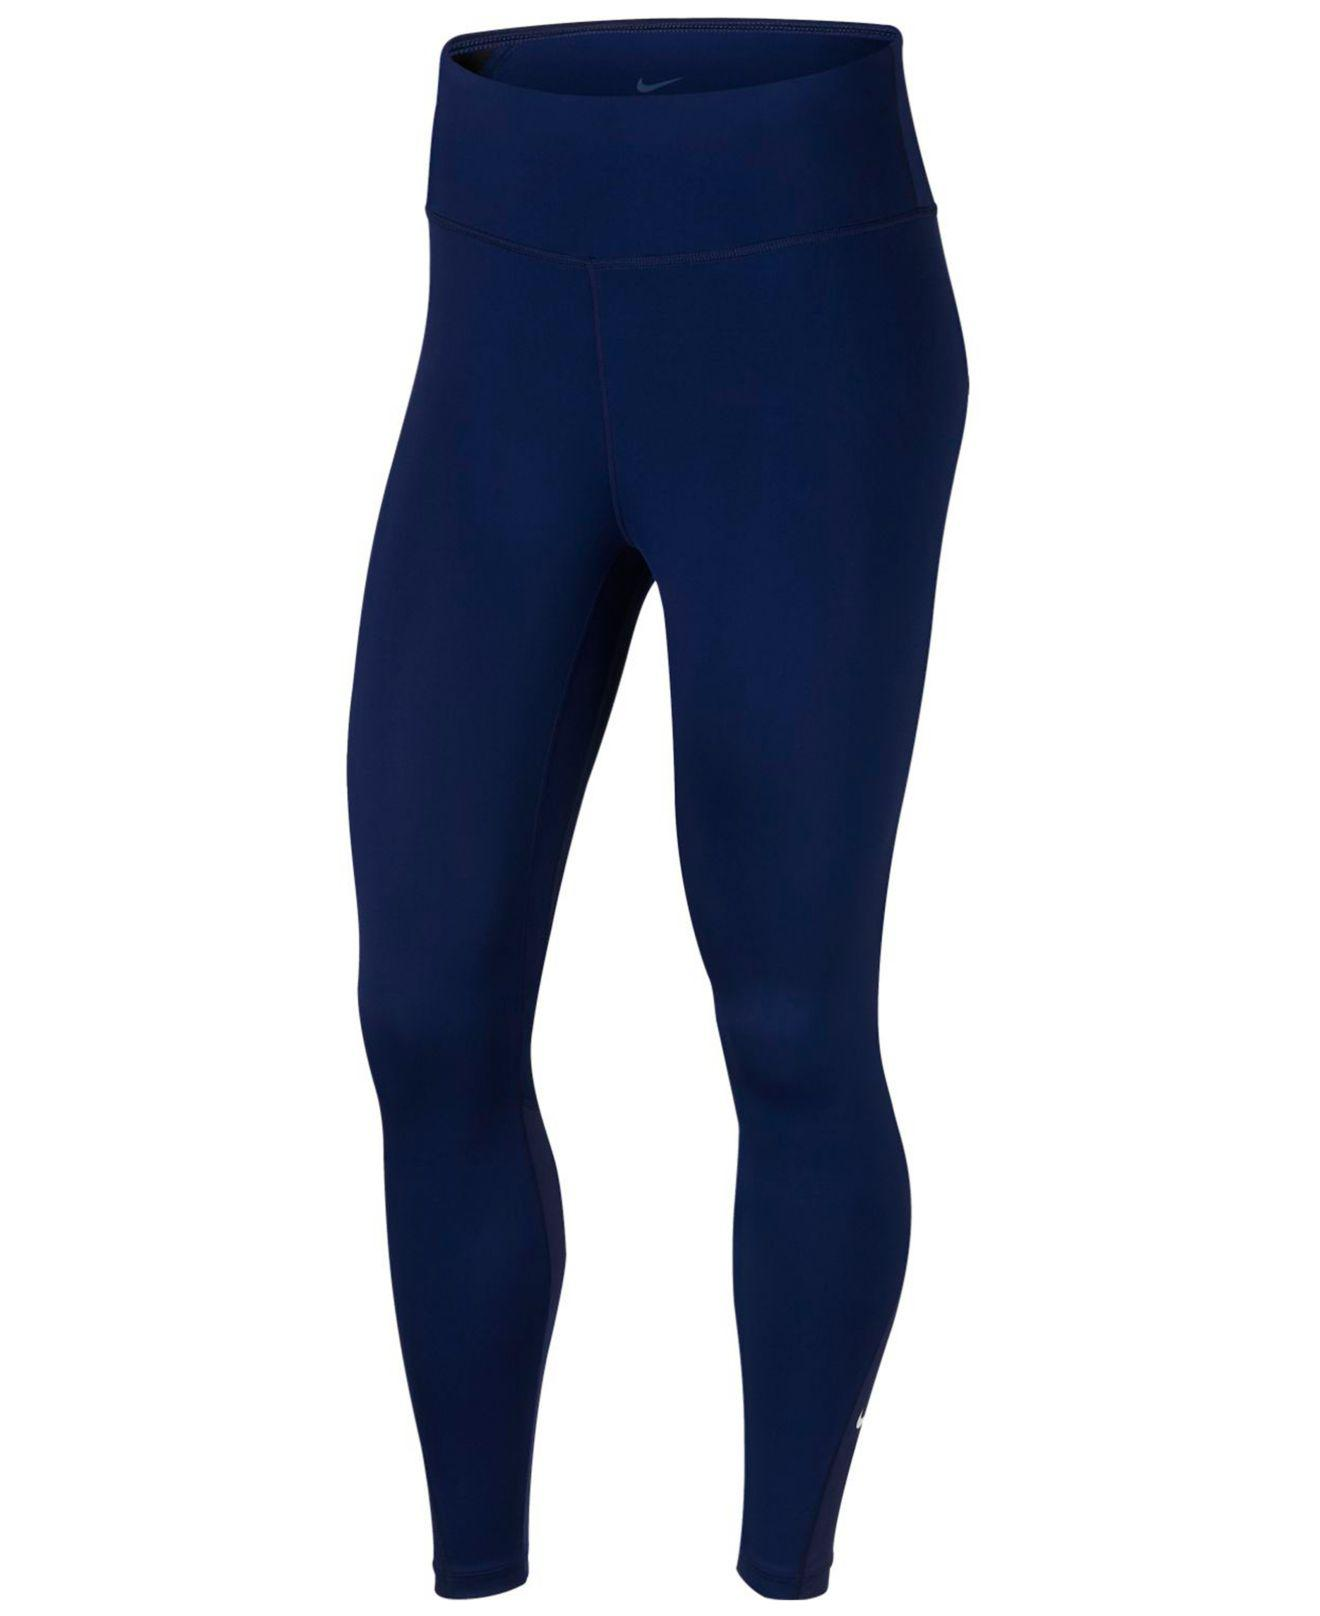 dab5b389350 Lyst - Nike All-in Training Ankle Leggings in Blue